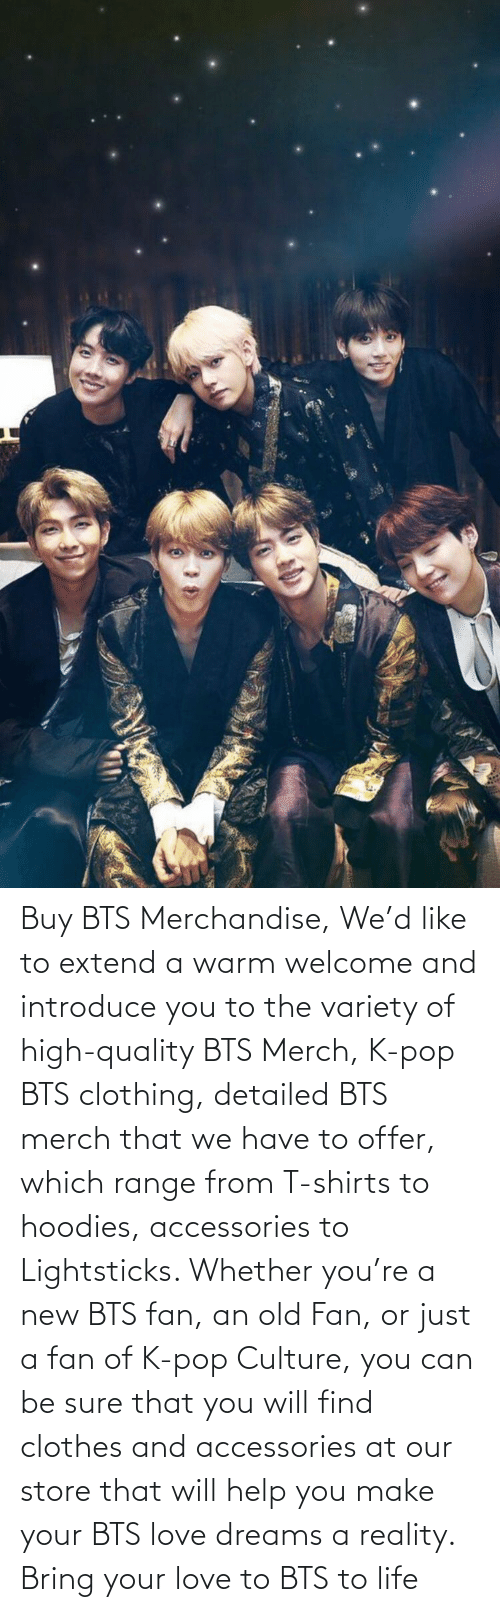 make: Buy BTS Merchandise, We'd like to extend a warm welcome and introduce you to the variety of high-quality BTS Merch, K-pop BTS clothing, detailed BTS merch that we have to offer, which range from T-shirts to hoodies, accessories to Lightsticks. Whether you're a new BTS fan, an old Fan, or just a fan of K-pop Culture, you can be sure that you will find clothes and accessories at our store that will help you make your BTS love dreams a reality. Bring your love to BTS to life